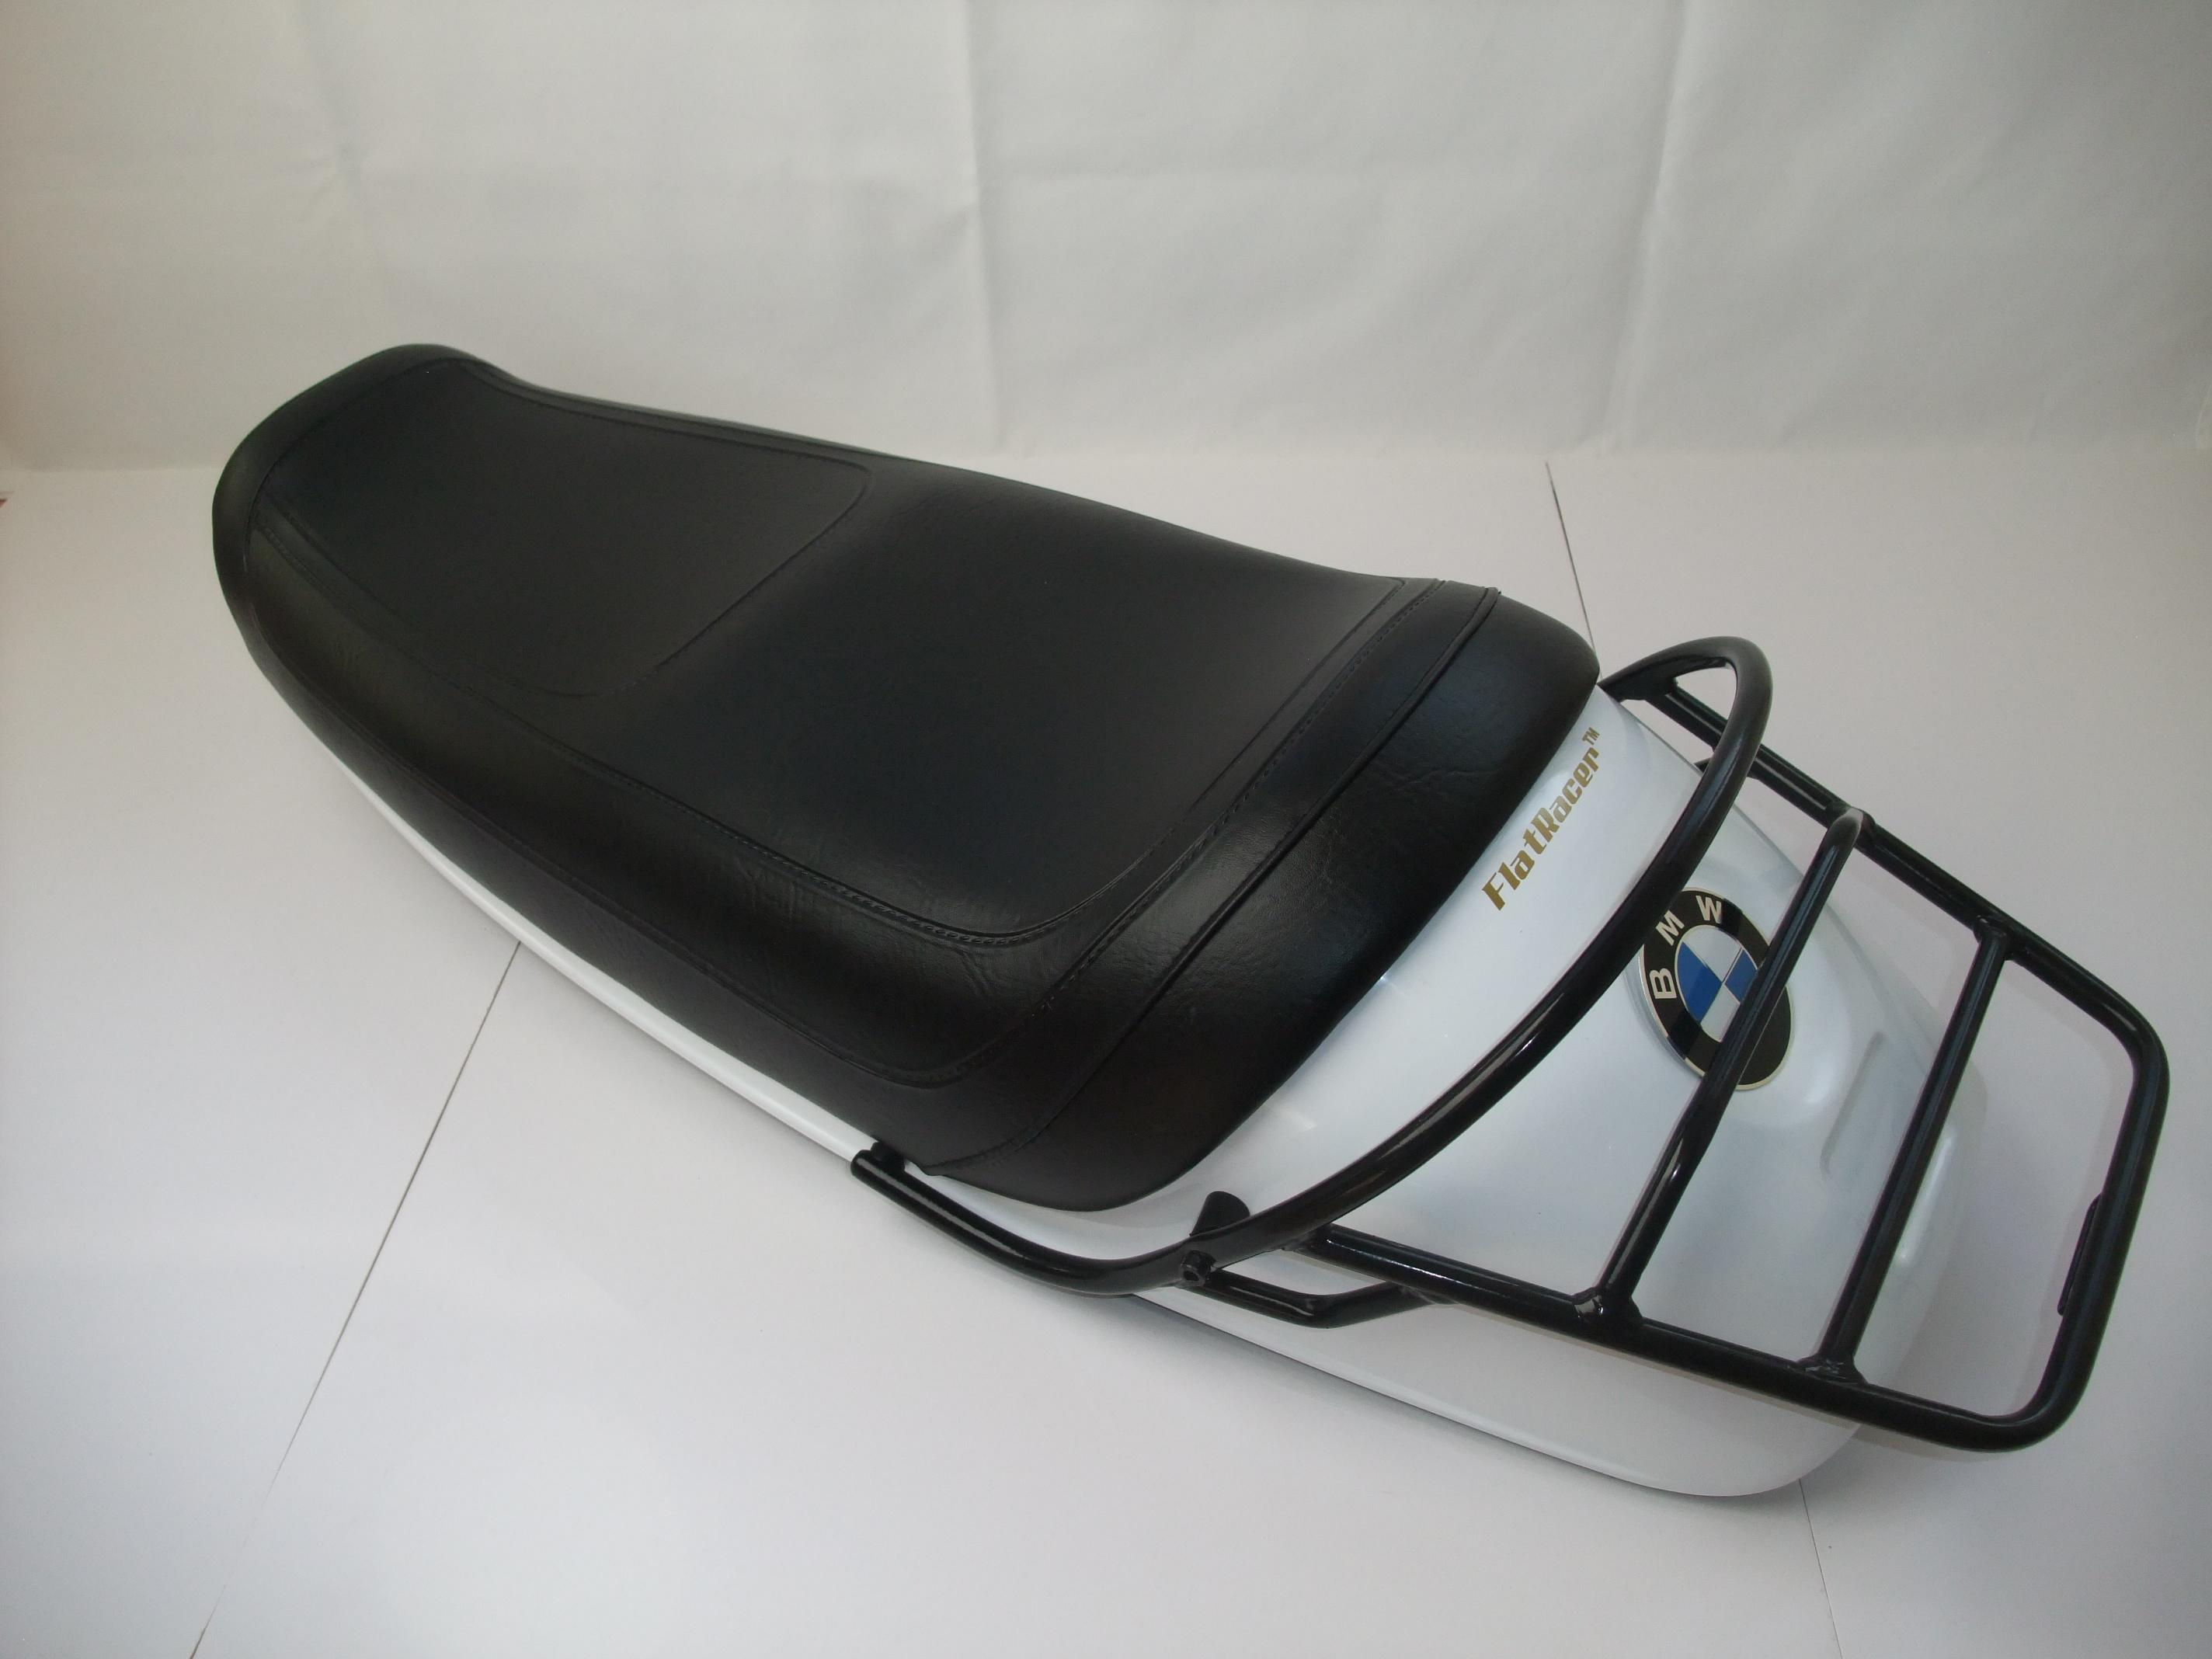 FlatRacer BMW R90S (1973) dual seat replica replacement seat cover - PLAIN PATTERN TYPE